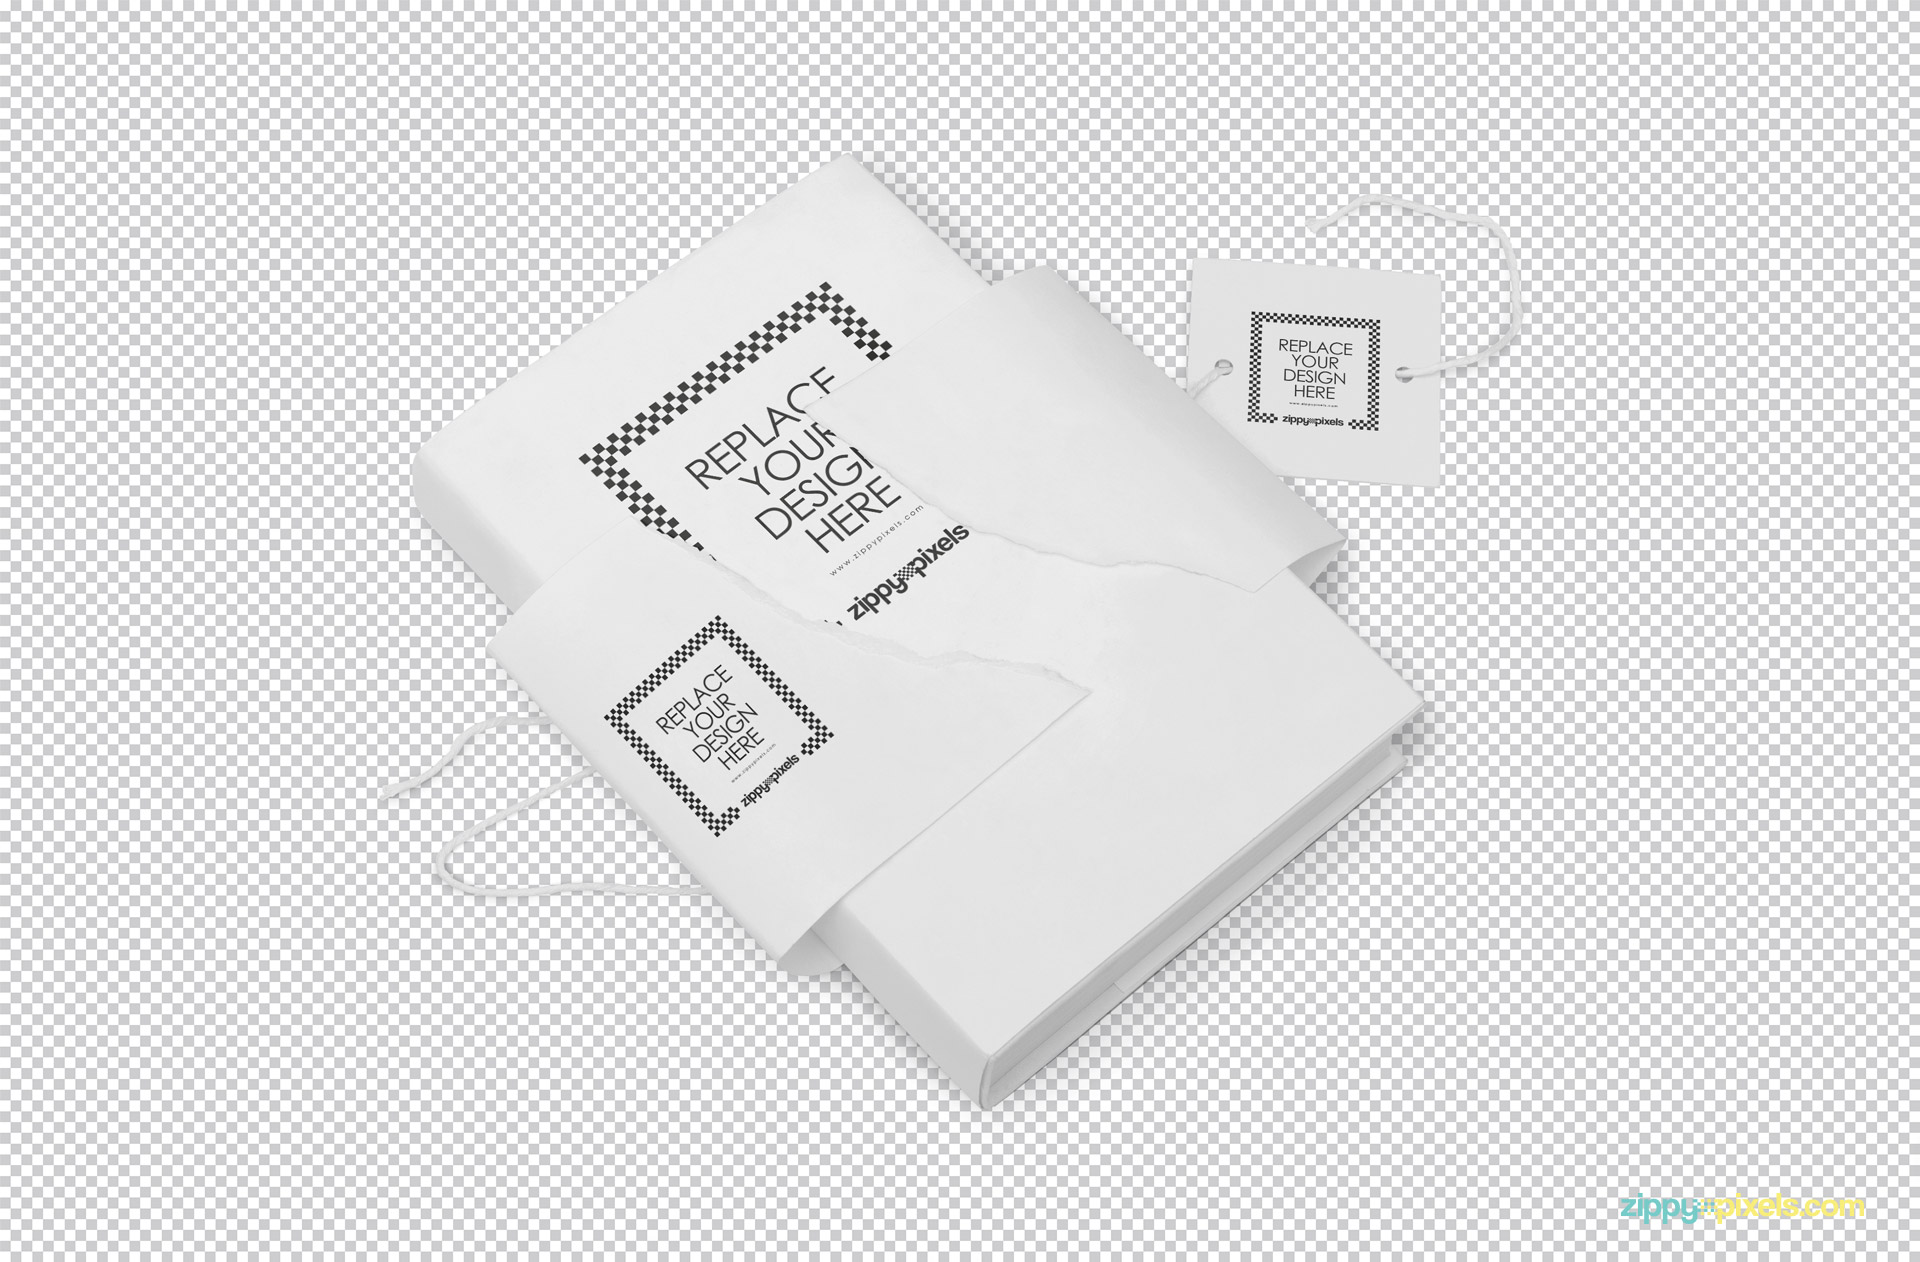 Plain white book cover isolated with greyscale background.